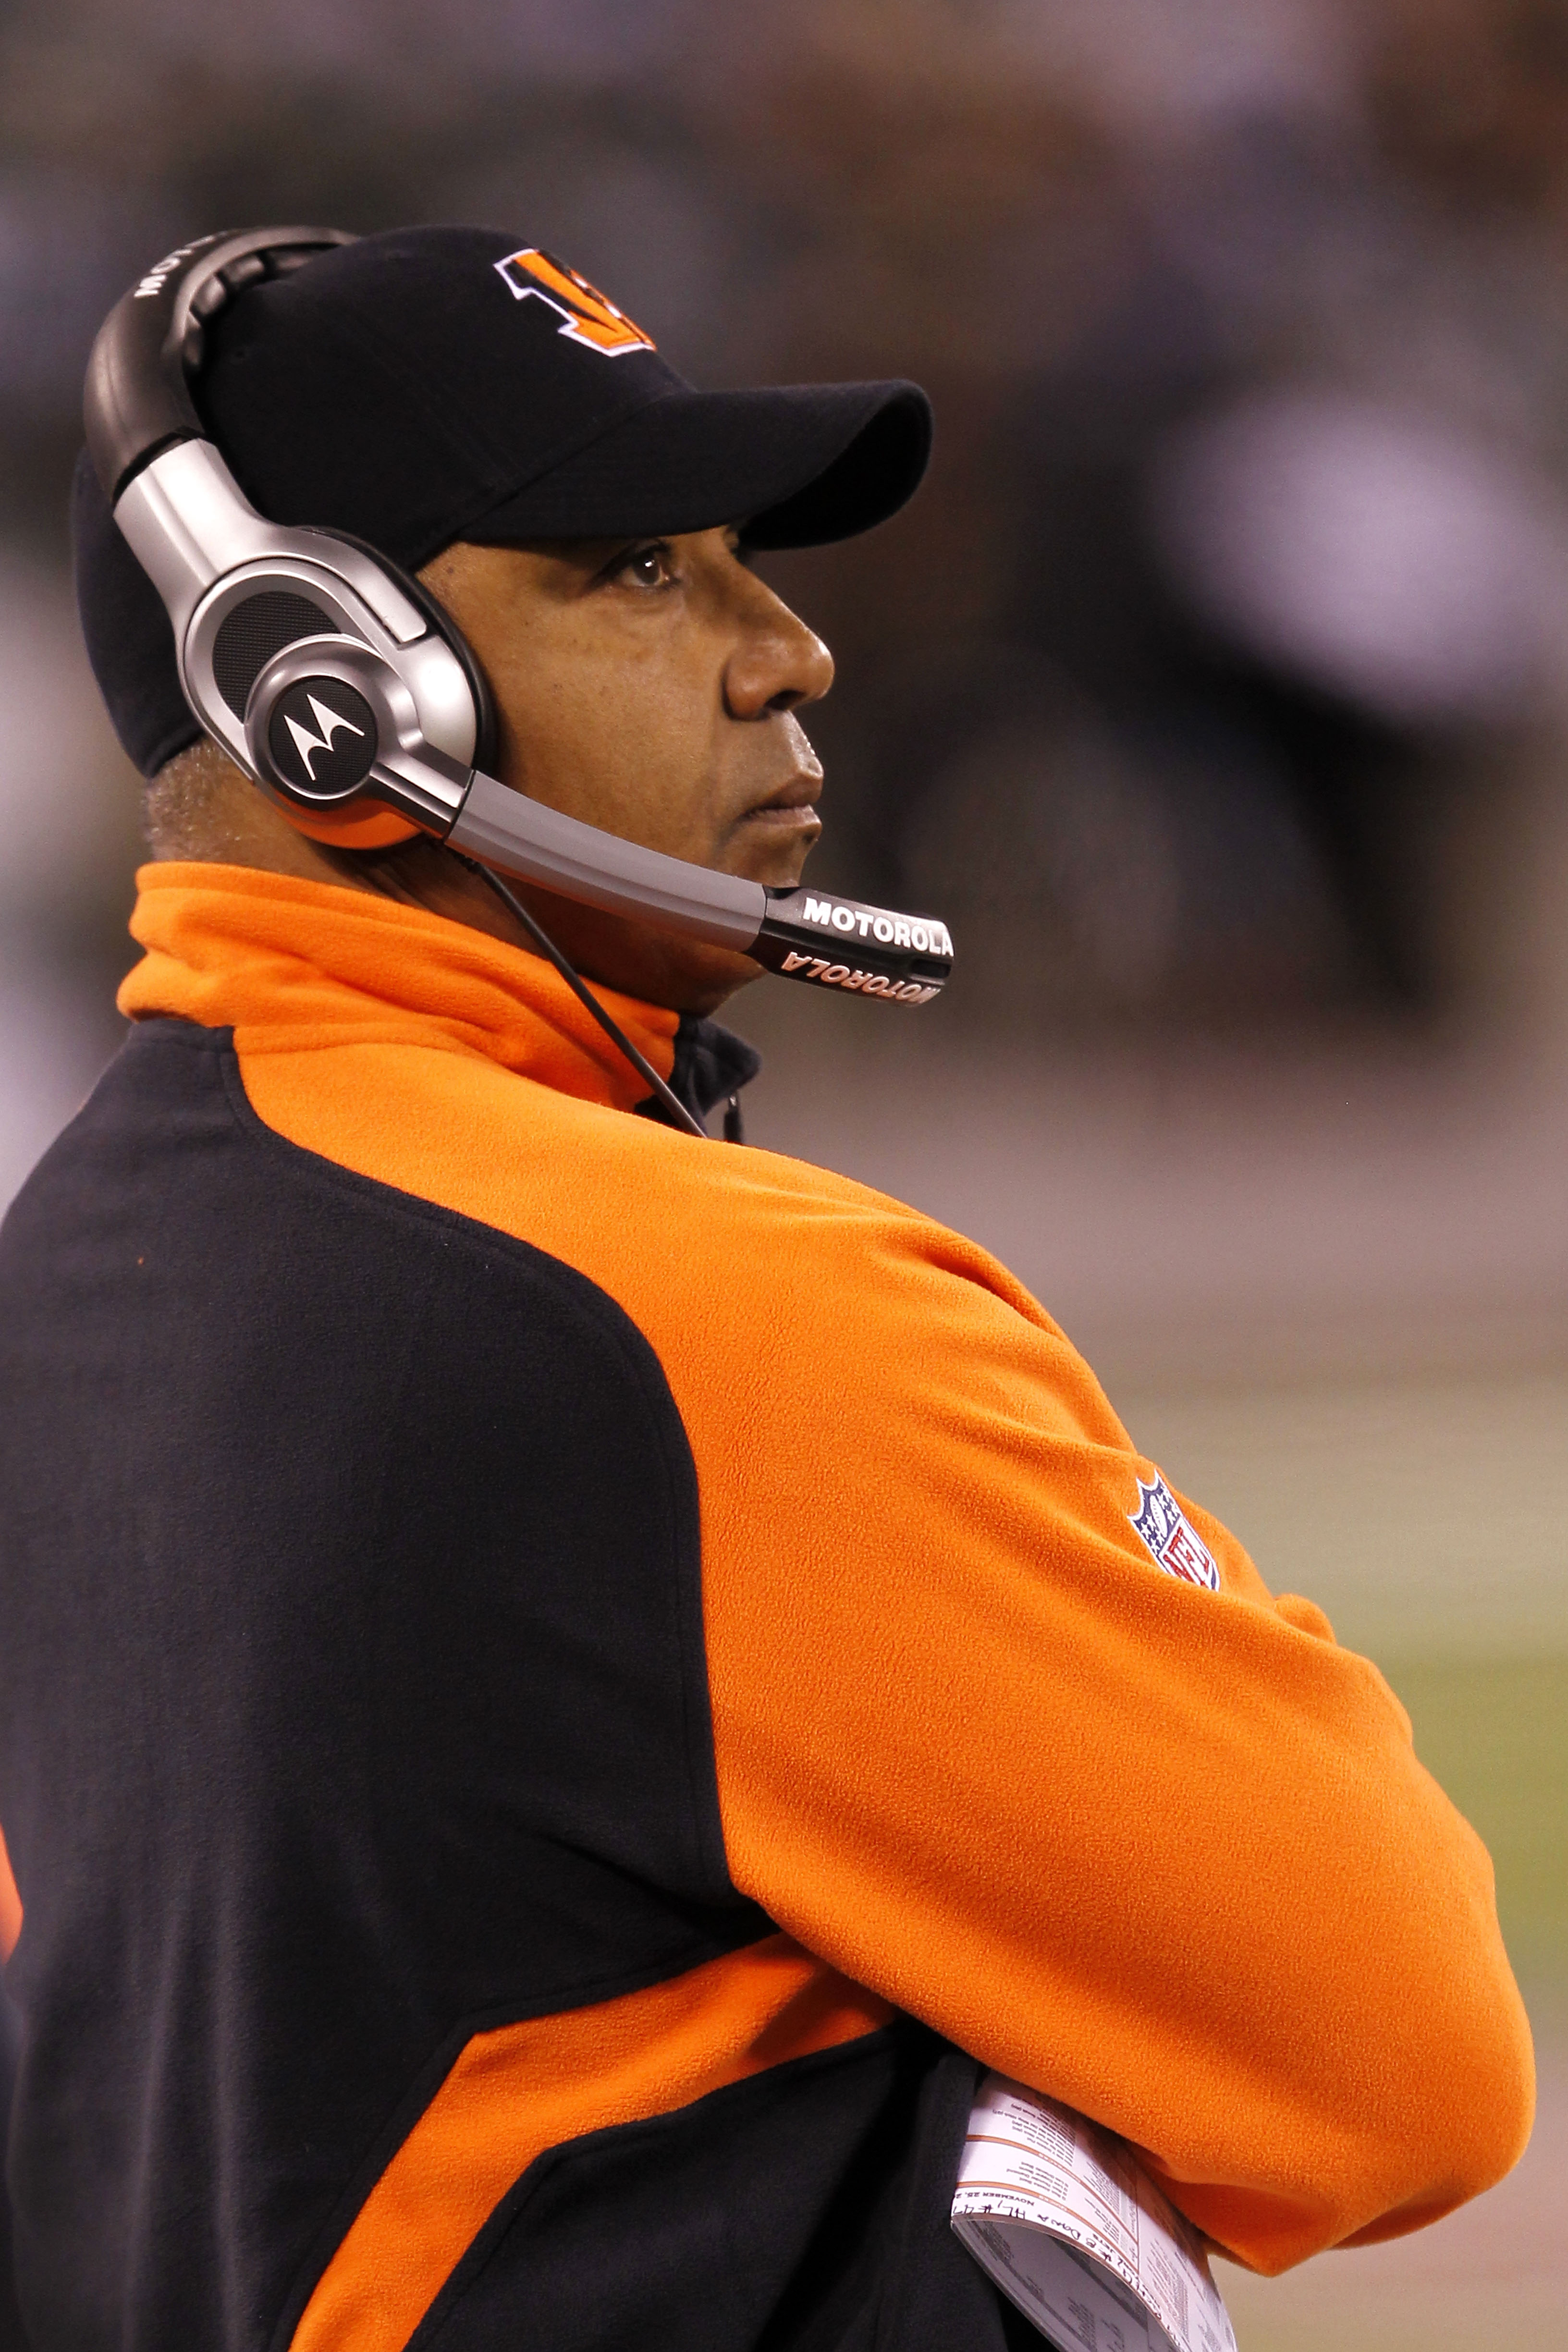 EAST RUTHERFORD, NJ - NOVEMBER 25: Head Coach Marvin Lewis of the Cincinnati Bengals watches the game against the New York Jets at New Meadowlands Stadium on November 25, 2010 in East Rutherford, New Jersey. The Jets defeated the Bengals 26-10.  (Photo by